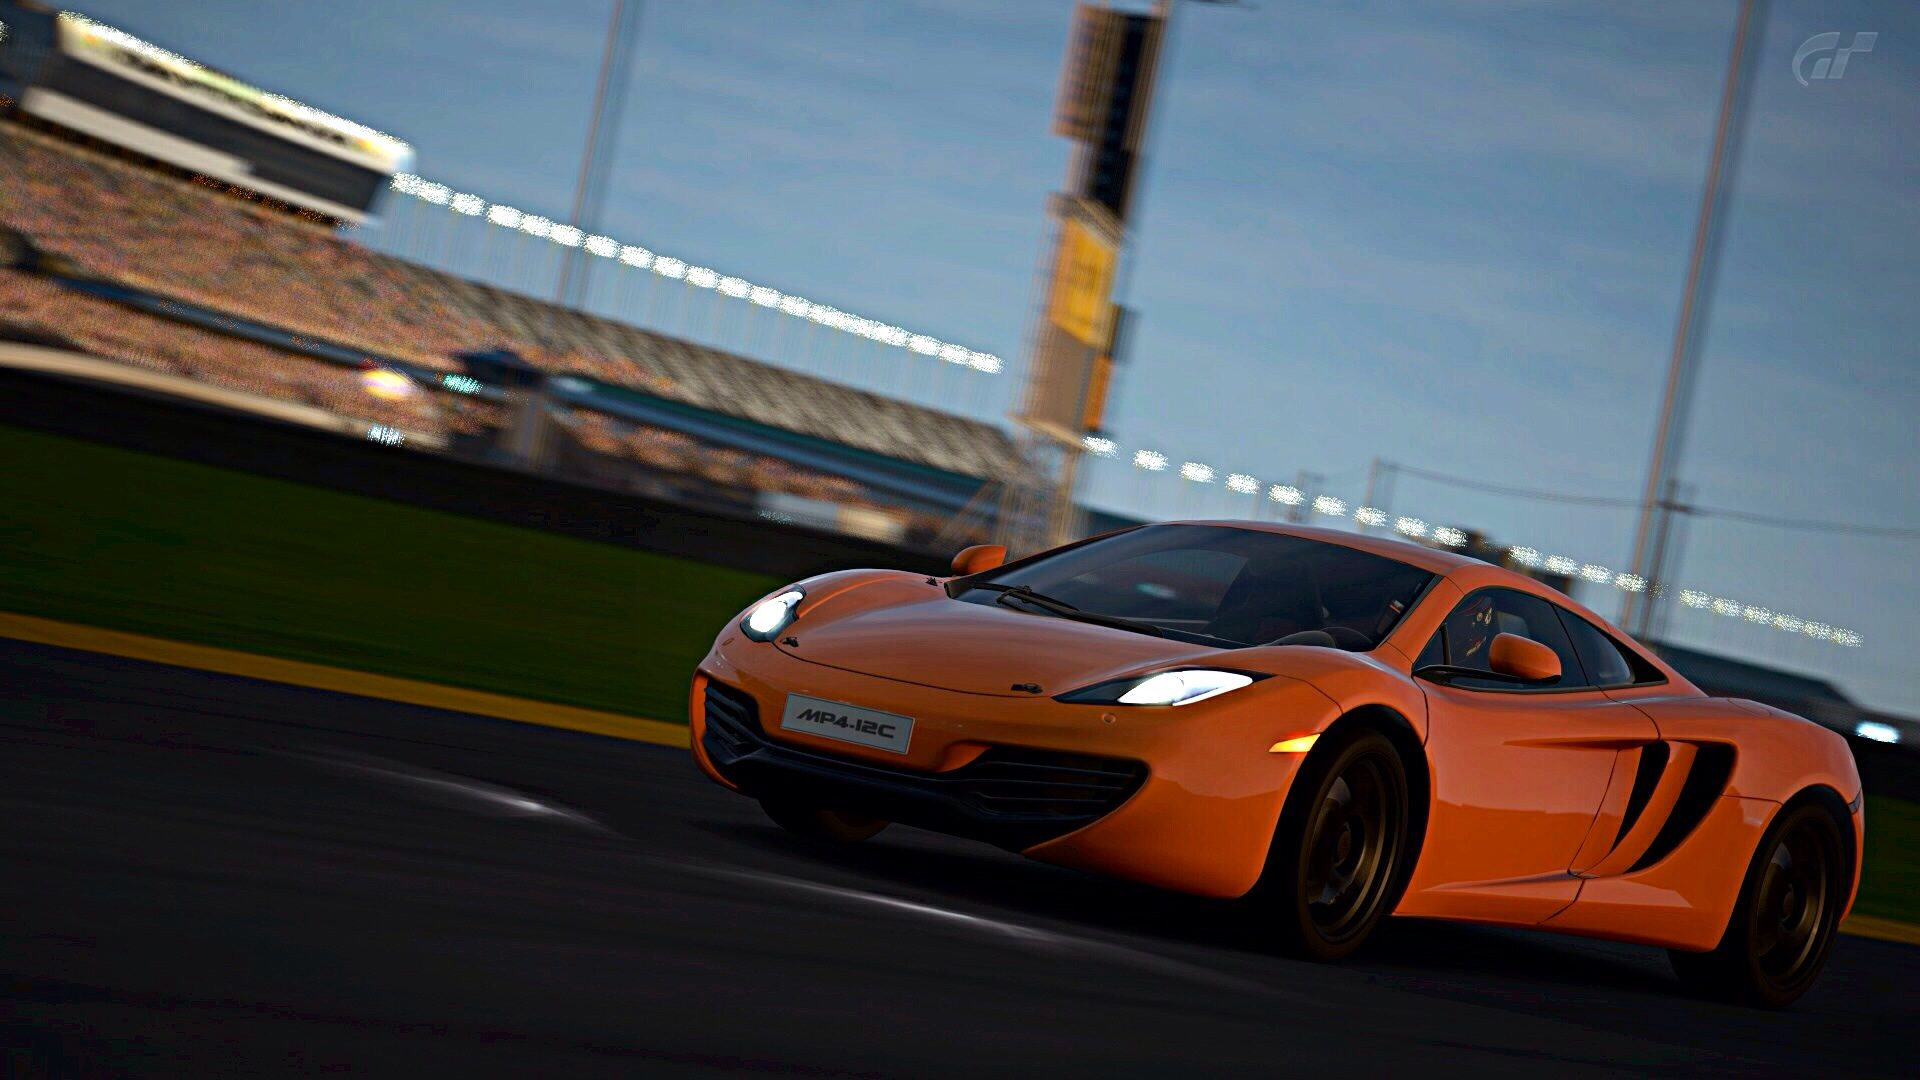 MP4-12C GTC Daytona Road Course (2).jpg